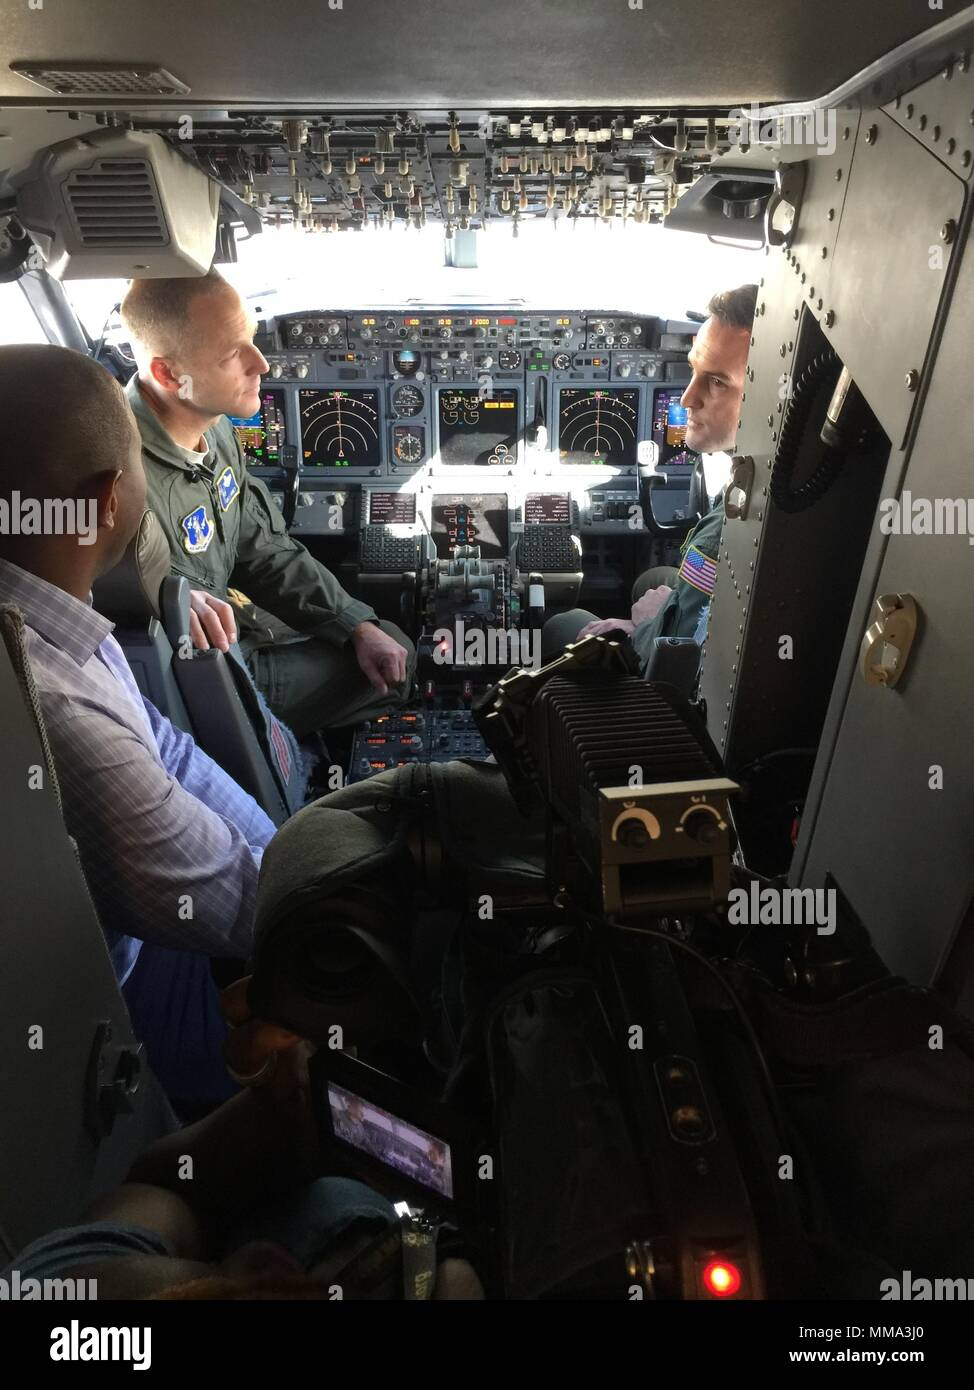 201st Airlift Squadron pilots Maj. Greg Boney (left) and Capt. Brandon Splawn (right) speak to reporters on the C-40 Clipper, aircraft flight deck at Joint base Andrews, Md., Sept. 27, 2017. The pilots, two inflight passenger specialists and two flight crew chiefs operated the aircraft carrying 10 Metropolitan Police Department of the District of Columbia Officers, and 3,000 lbs. of supplies, to Puerto Rico to aide in hurricane Maria relief efforts. (U.S. Air National Guard Photo by Senior Master Sgt. Craig Clapper/released) - Stock Image